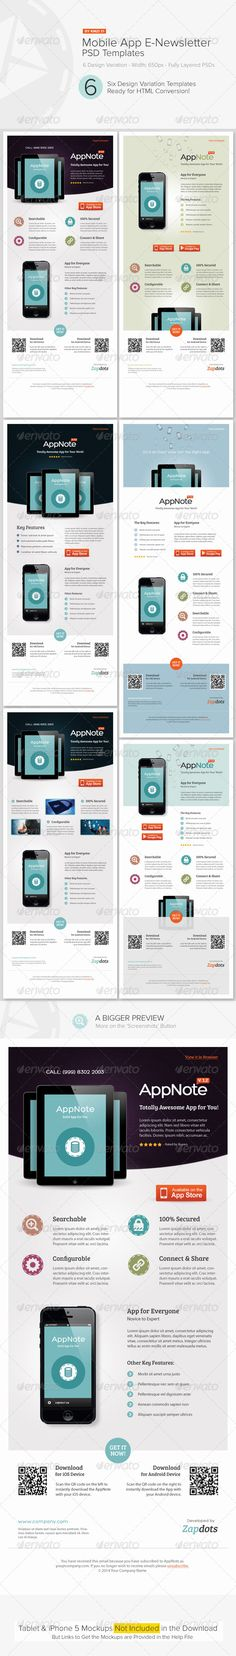 Mobile App E-Newsletter PSD Templates are design templates created for sale on Graphic River. More info of the template and how to get the template sourcefiles can be found on this page, http://graphicriver.net/item/mobile-app-enewsletter-psd-templates/4915002?r=kinzi21